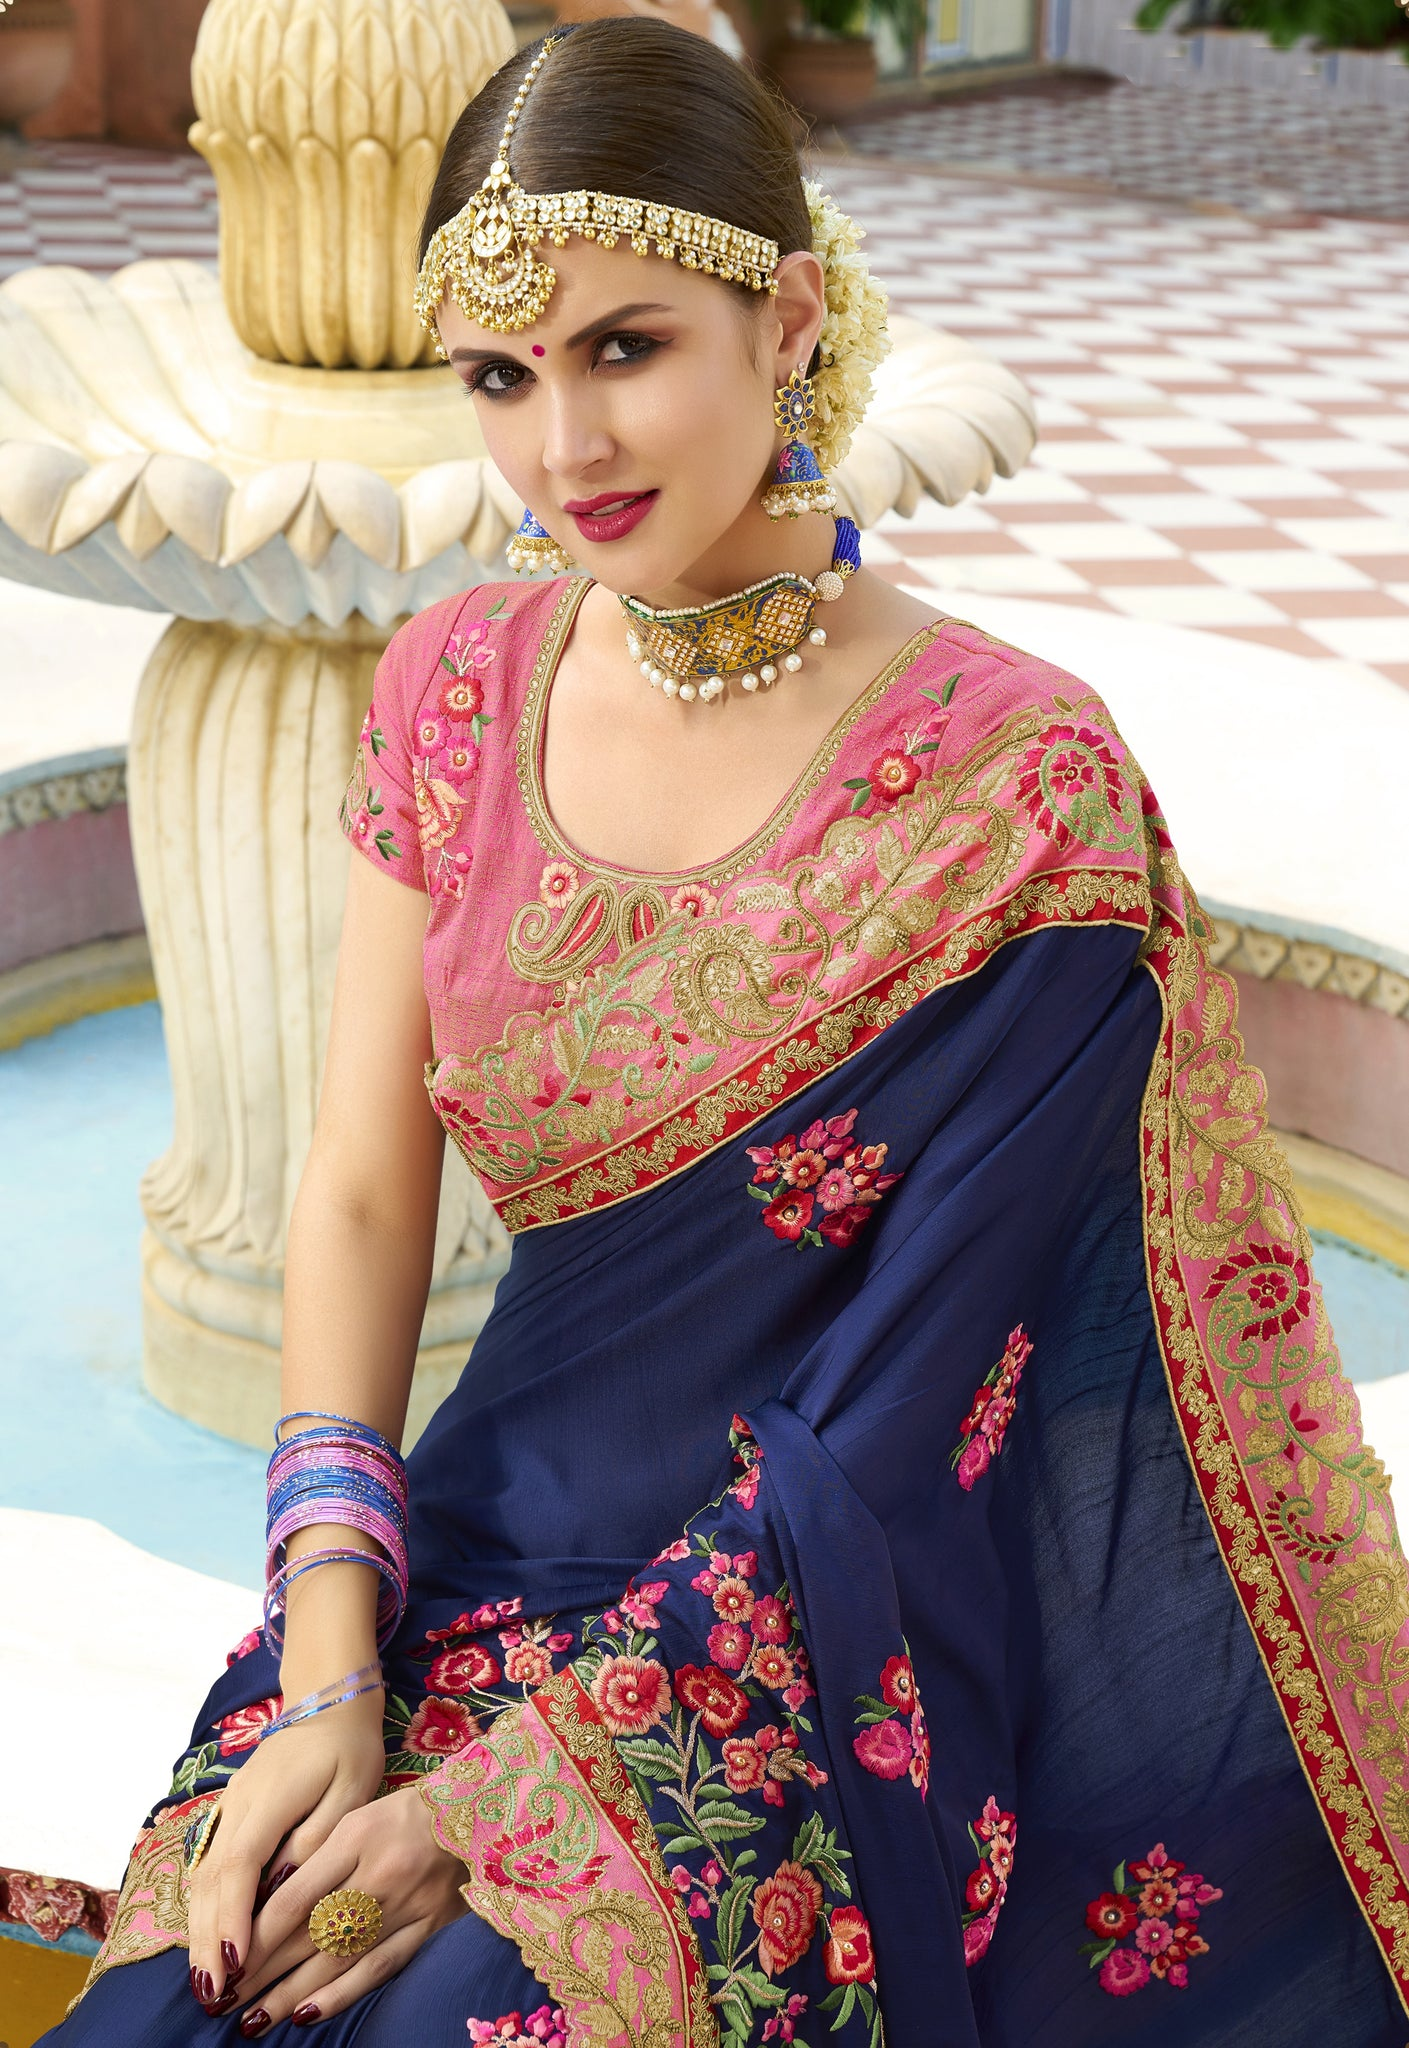 d96f6340cb3 ... Navy Blue Stones   Pearls Work Embroidered Silk Saree   Unstitched  Blouse